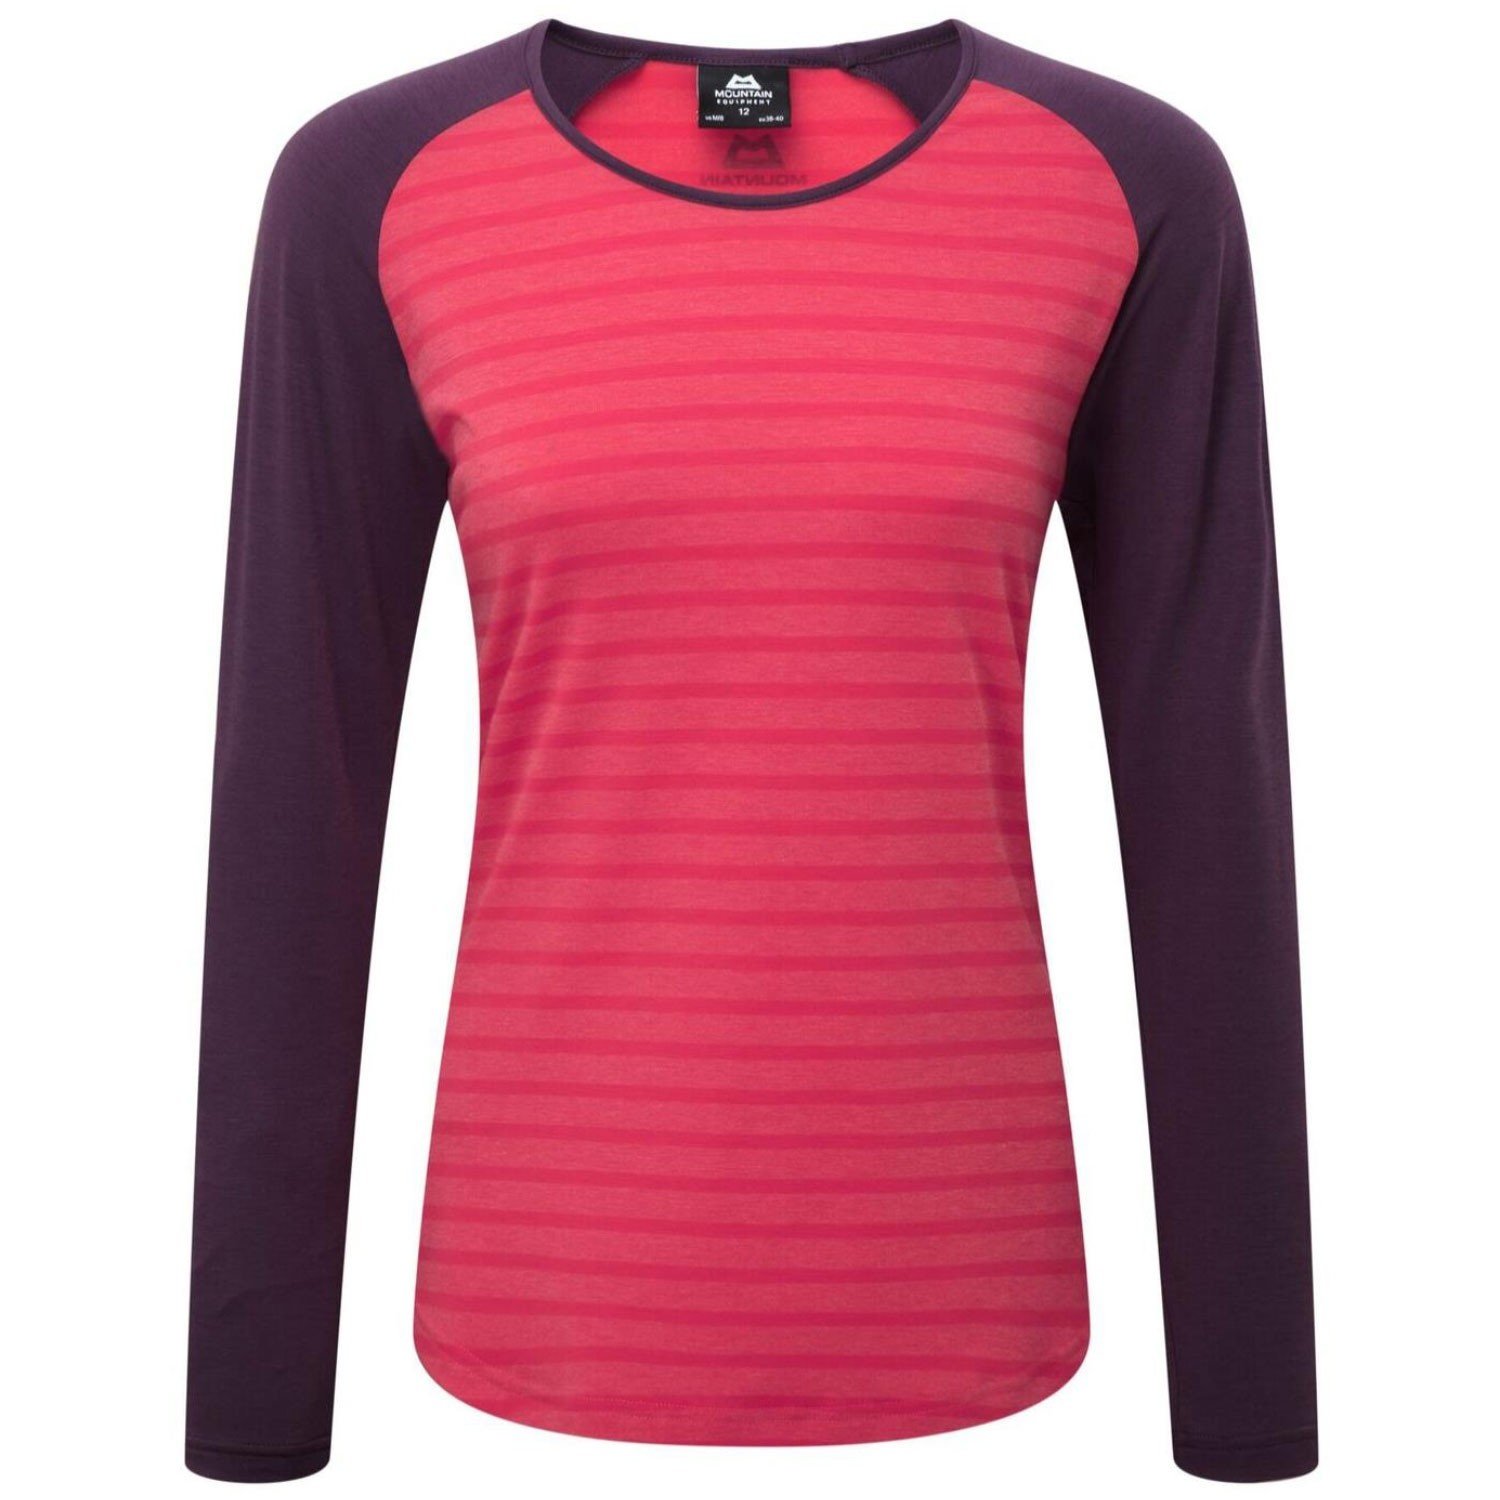 Mountain Equipment Women's Redline LS Tee - Virtual Pink/Blackberry